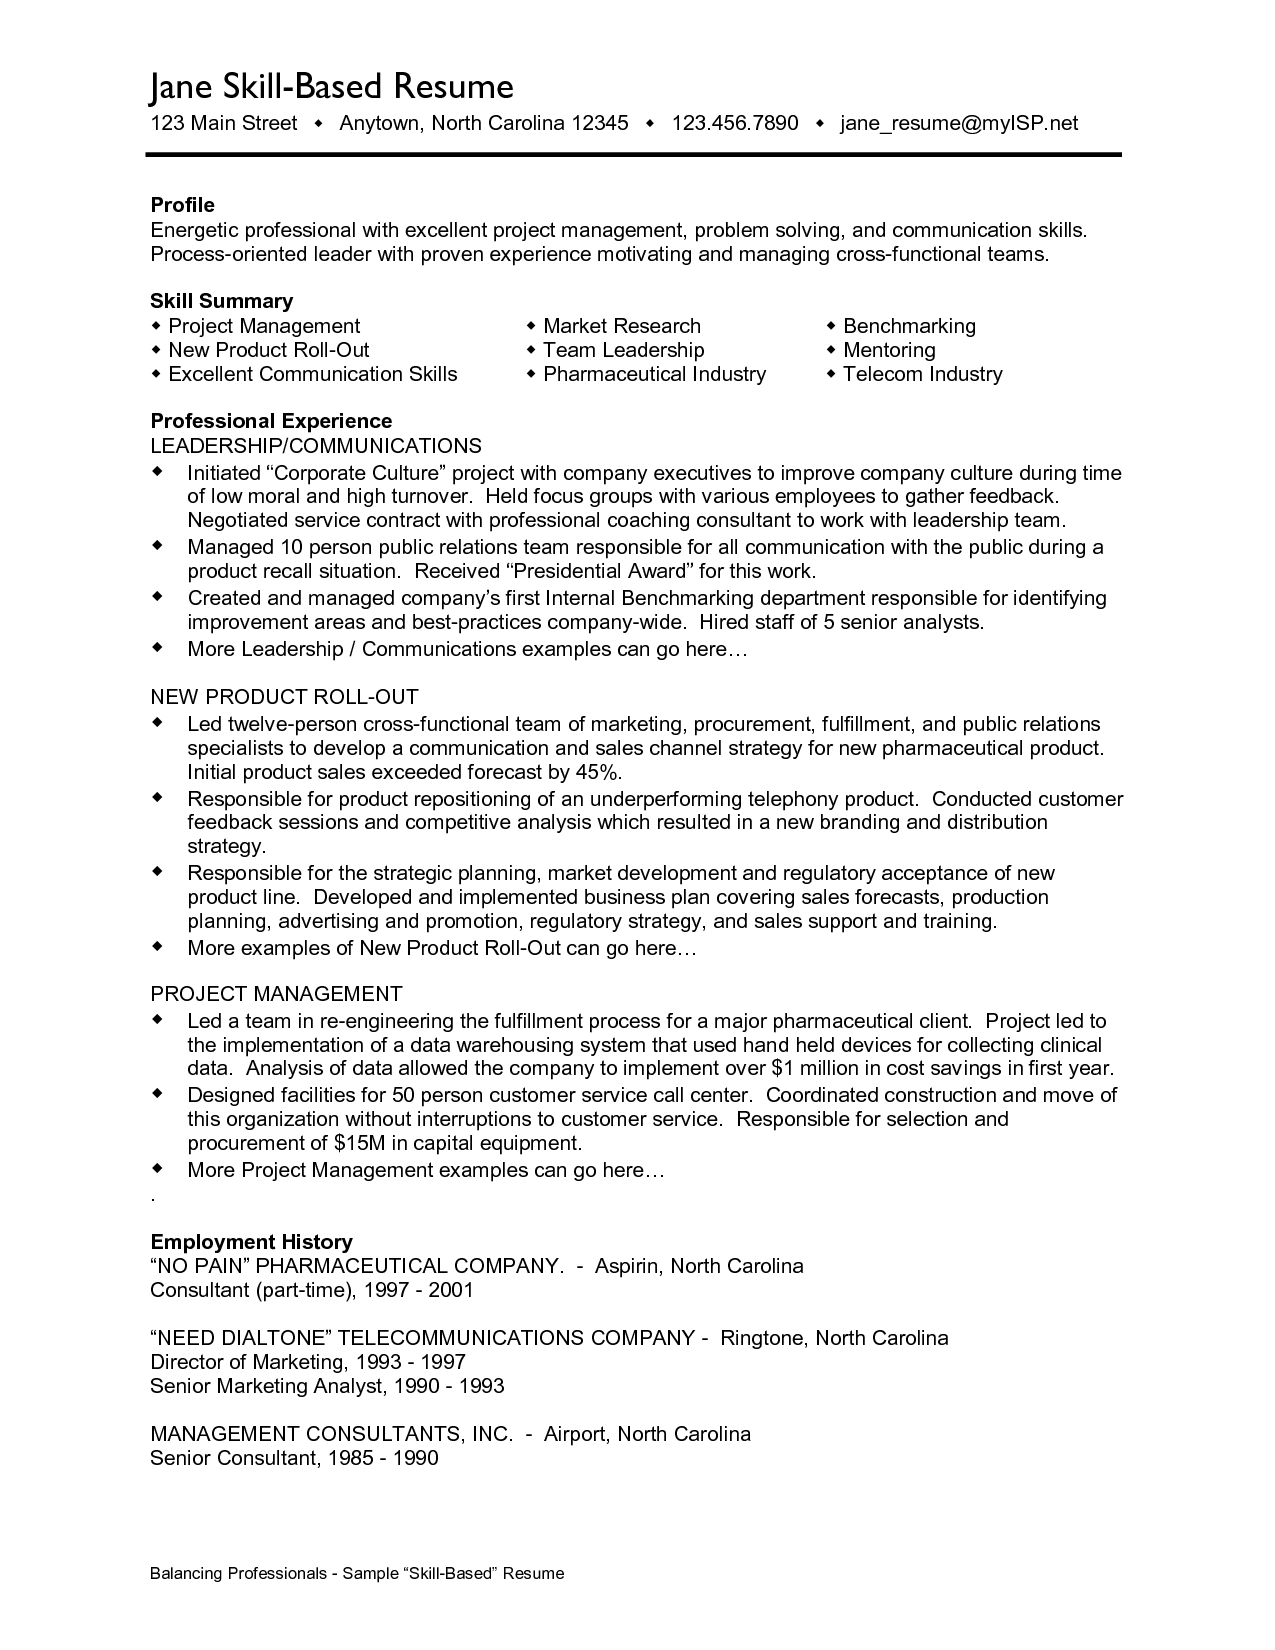 Skill Section Of Resume Example Job Resume Communication Skills Http Resumecareer